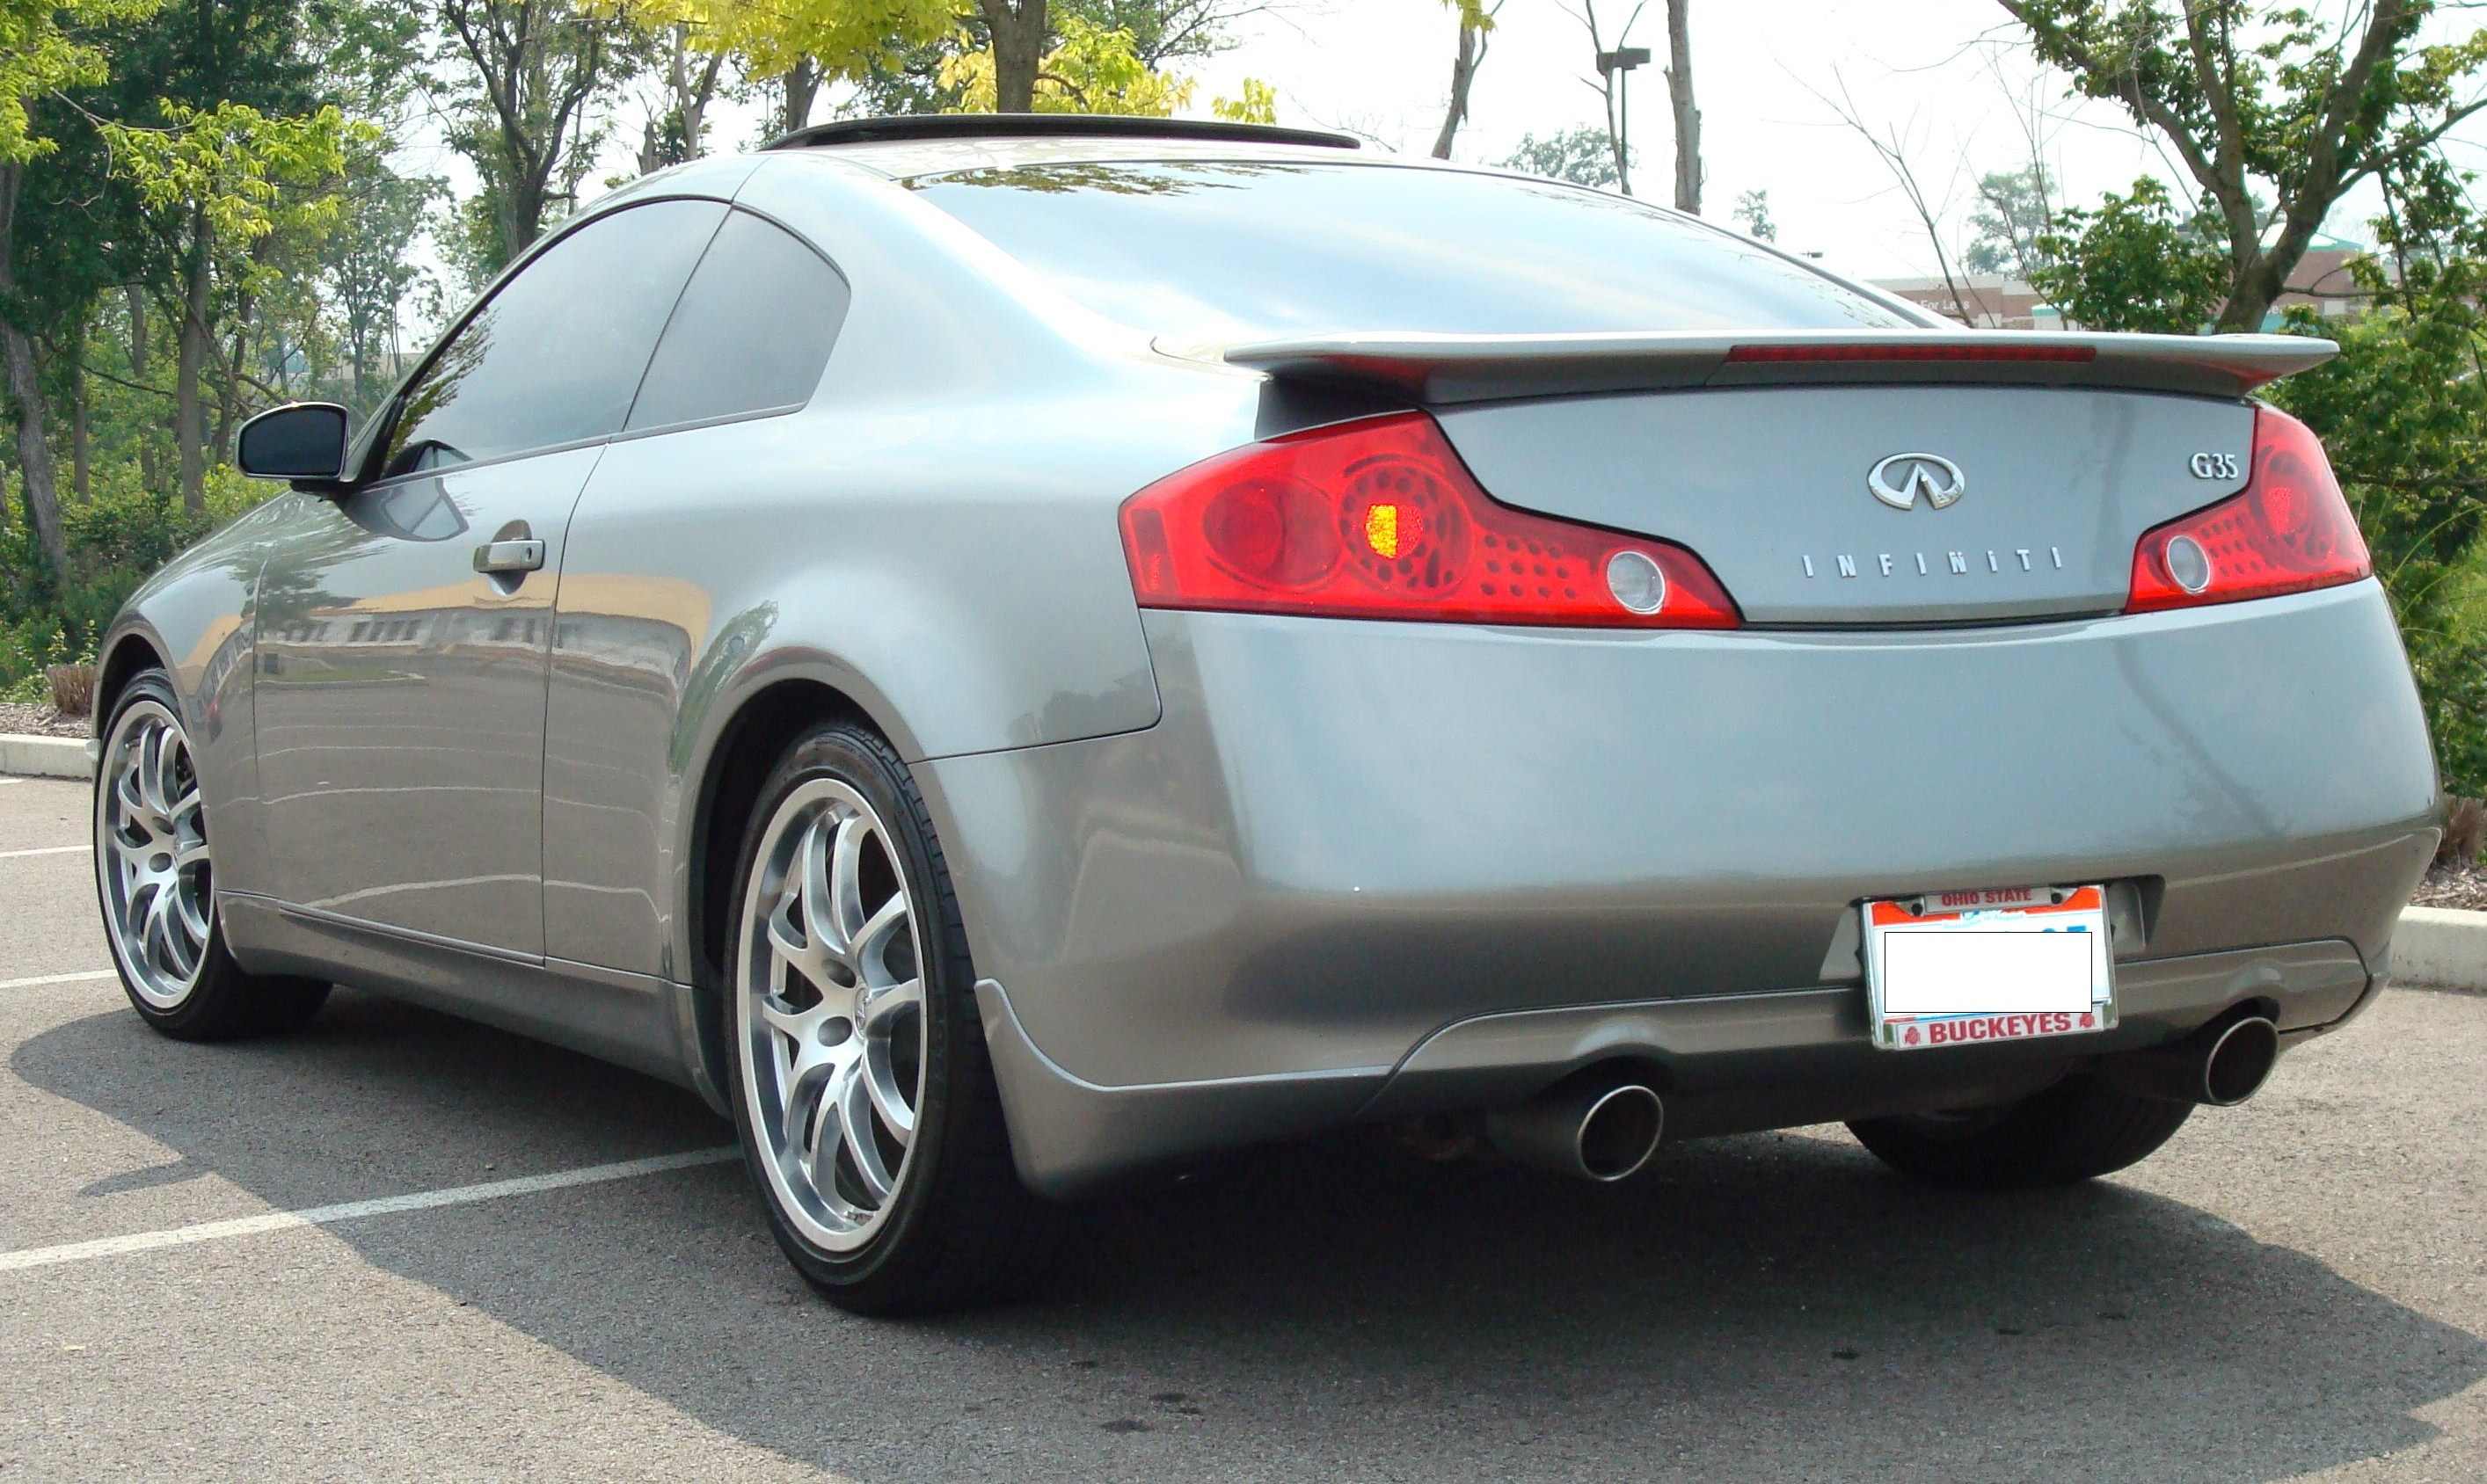 FOR SALE 2005 Infiniti G35 coupe w 24510 miles  LotusTalk